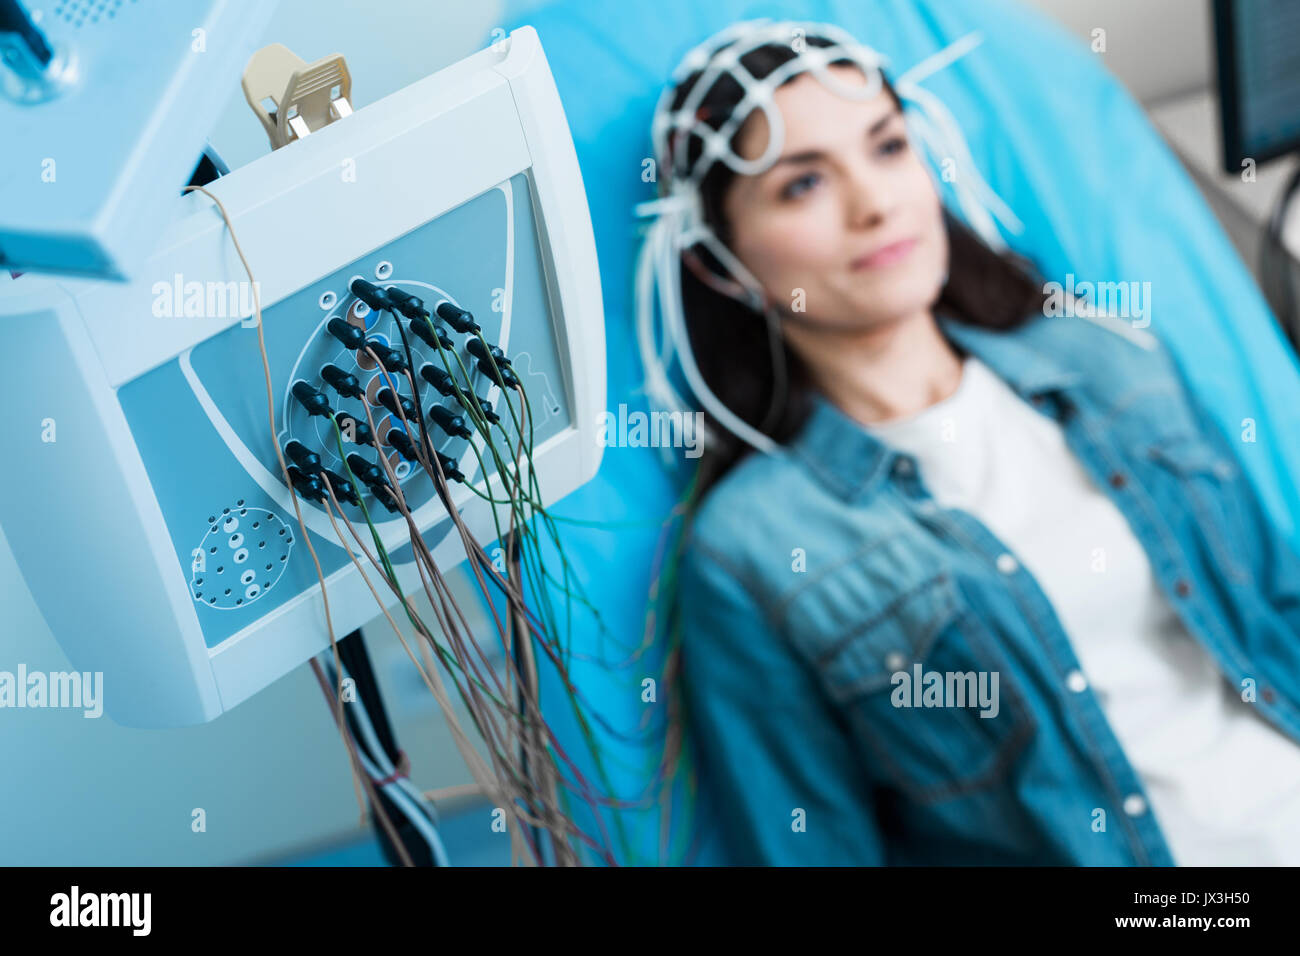 Close up of electroencephalograph recording brain waves of woman - Stock Image